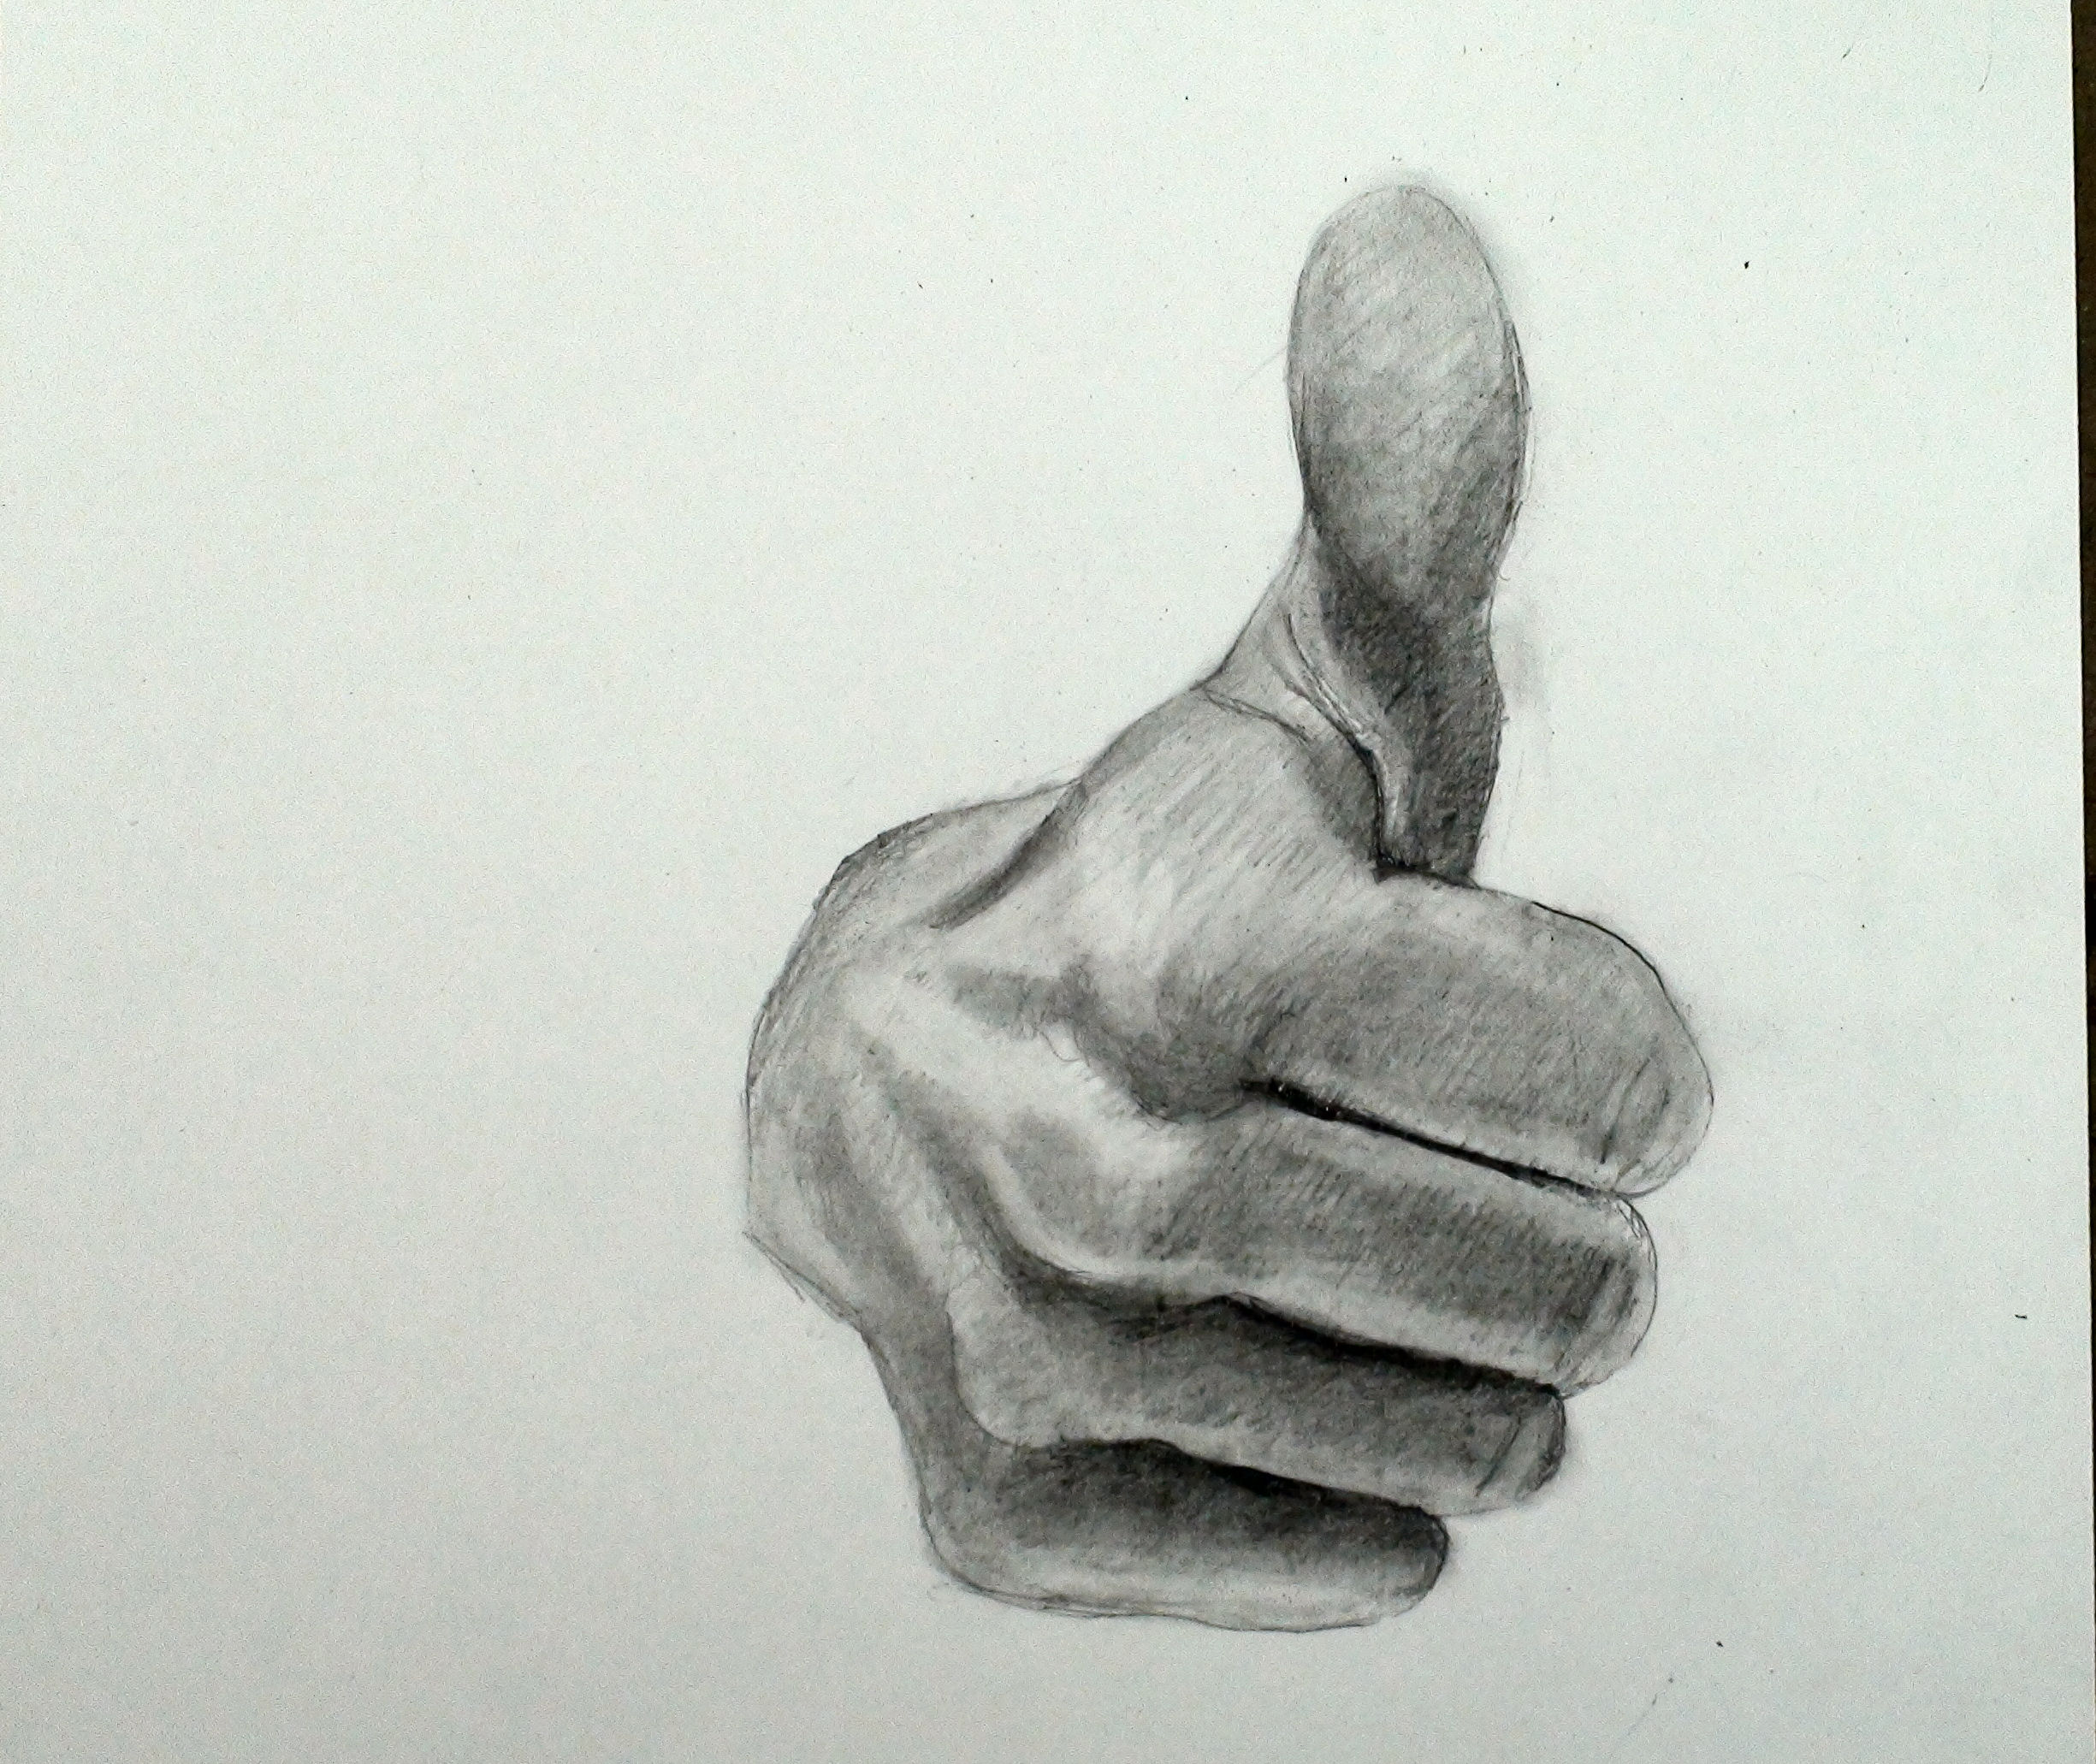 How to Draw a Hand Thumbs Up Gesture Finished